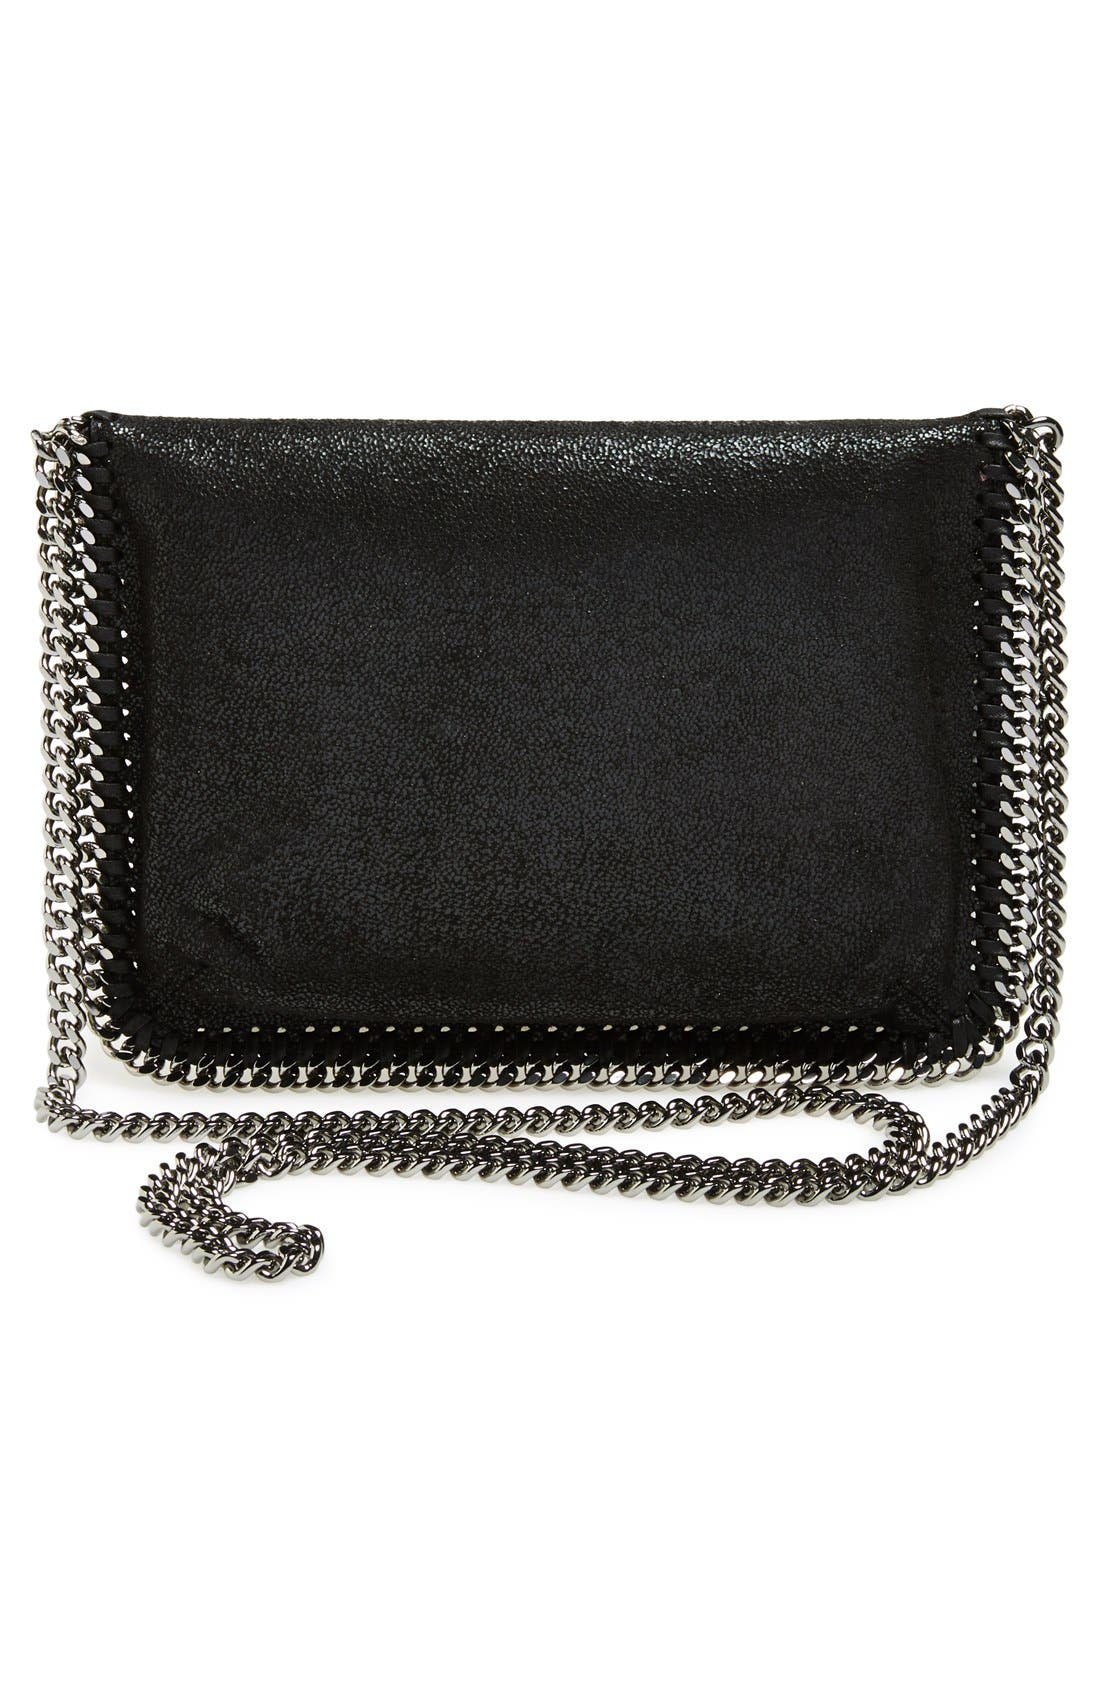 'Mini Falabella - Shaggy Deer' Faux Leather Crossbody Bag,                             Alternate thumbnail 4, color,                             001